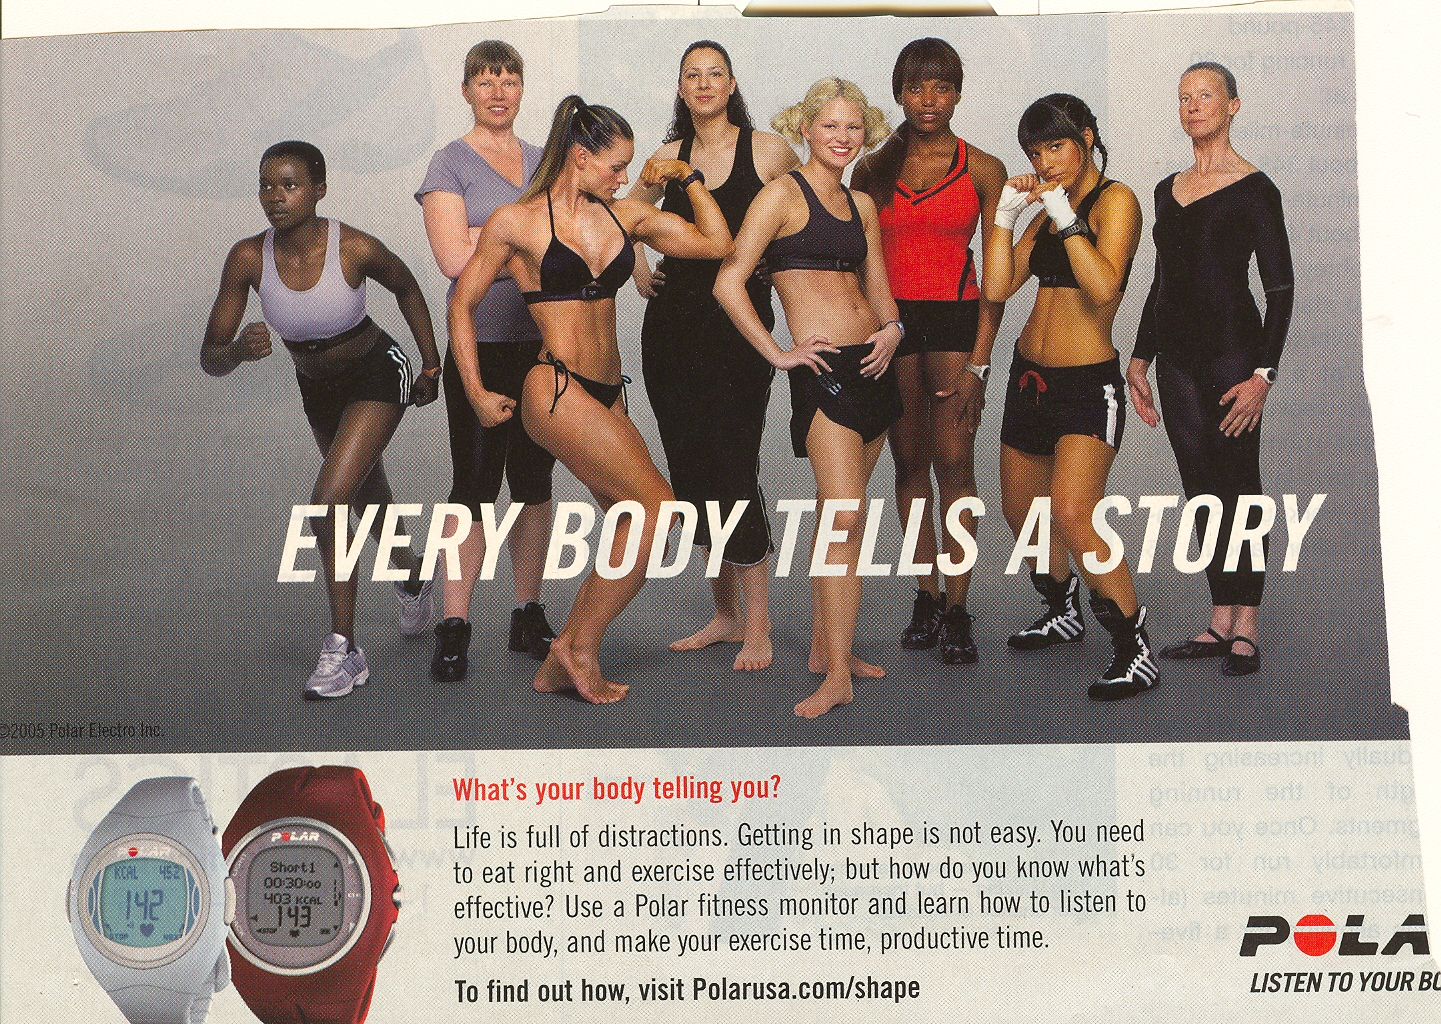 Advertising+women+body+image